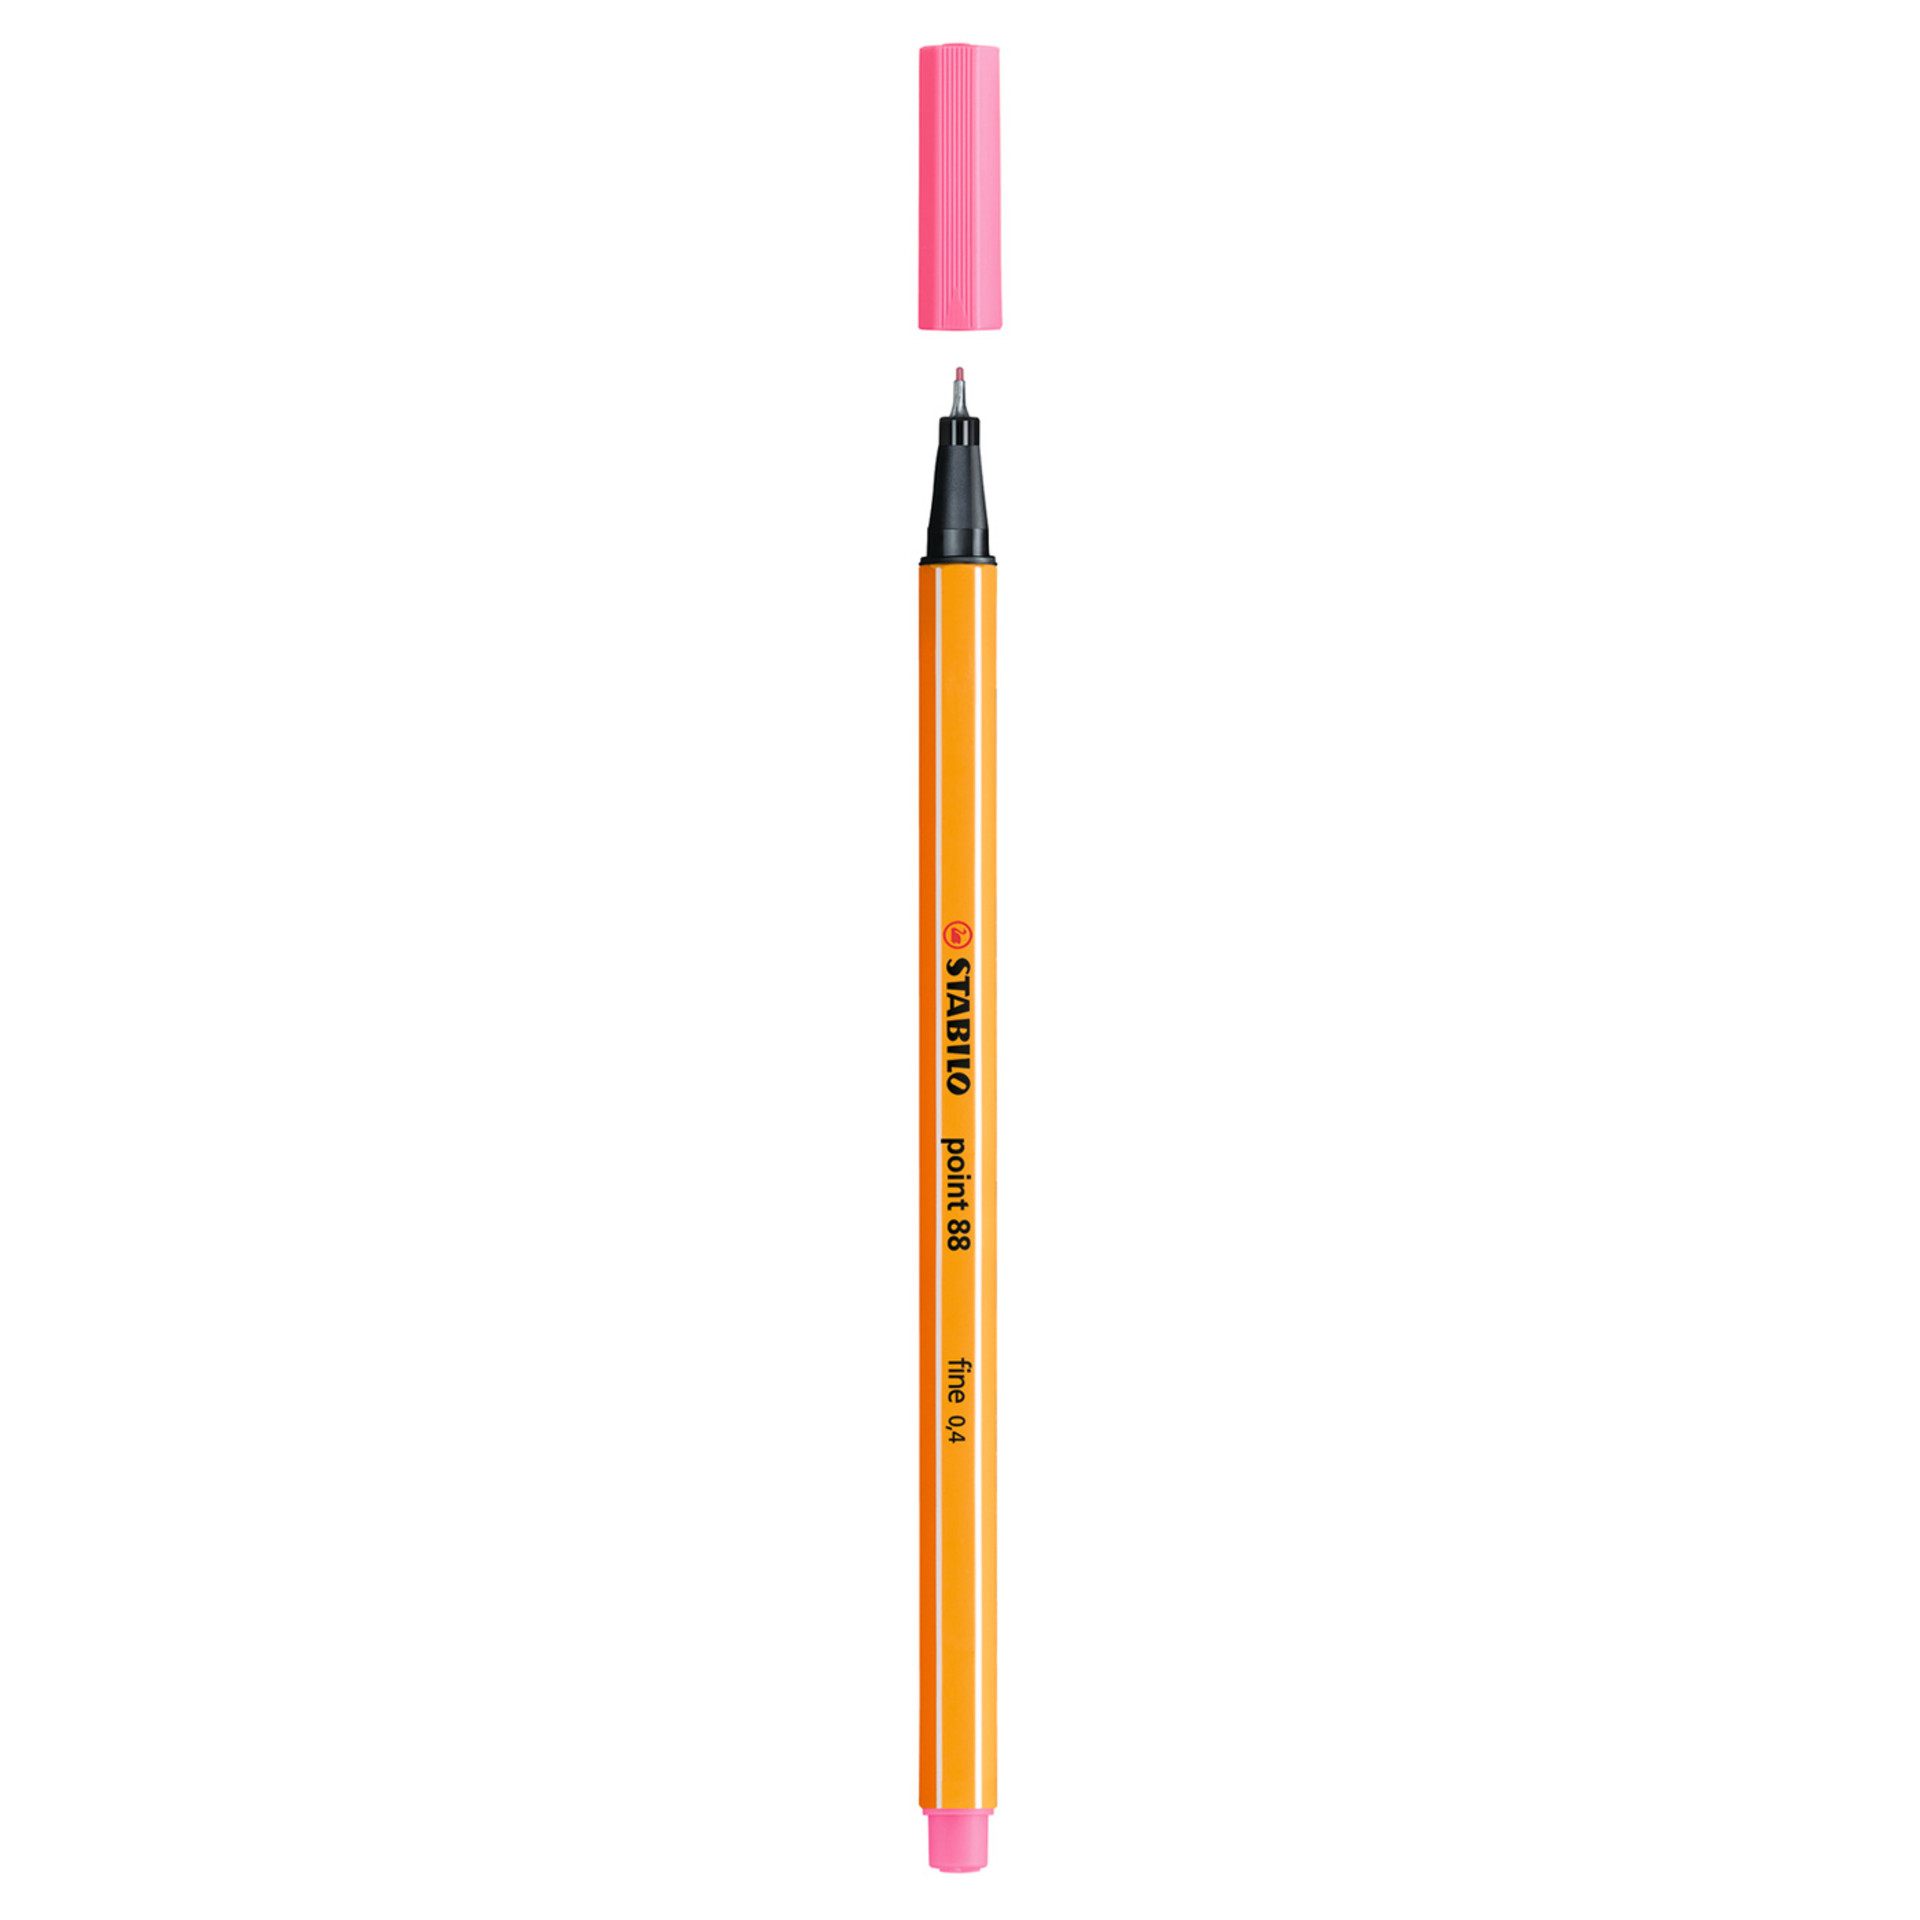 Stabilo Point 88 .4mm Fineliner Pen – Light Pink